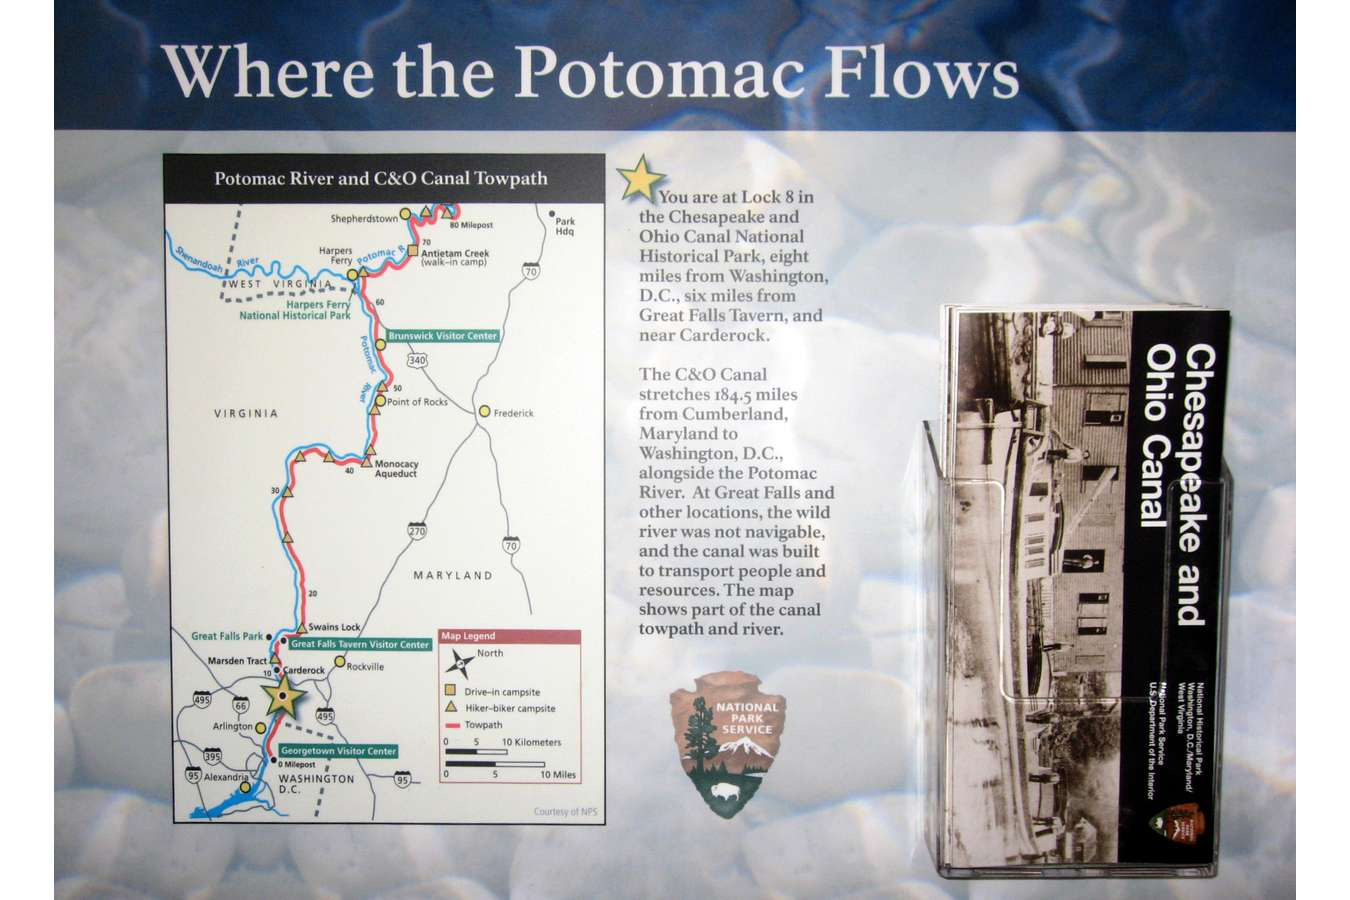 Potcy 1 : The River Center Interprets the Watershed of the Potomac River on the C&O Canal Near D.C.